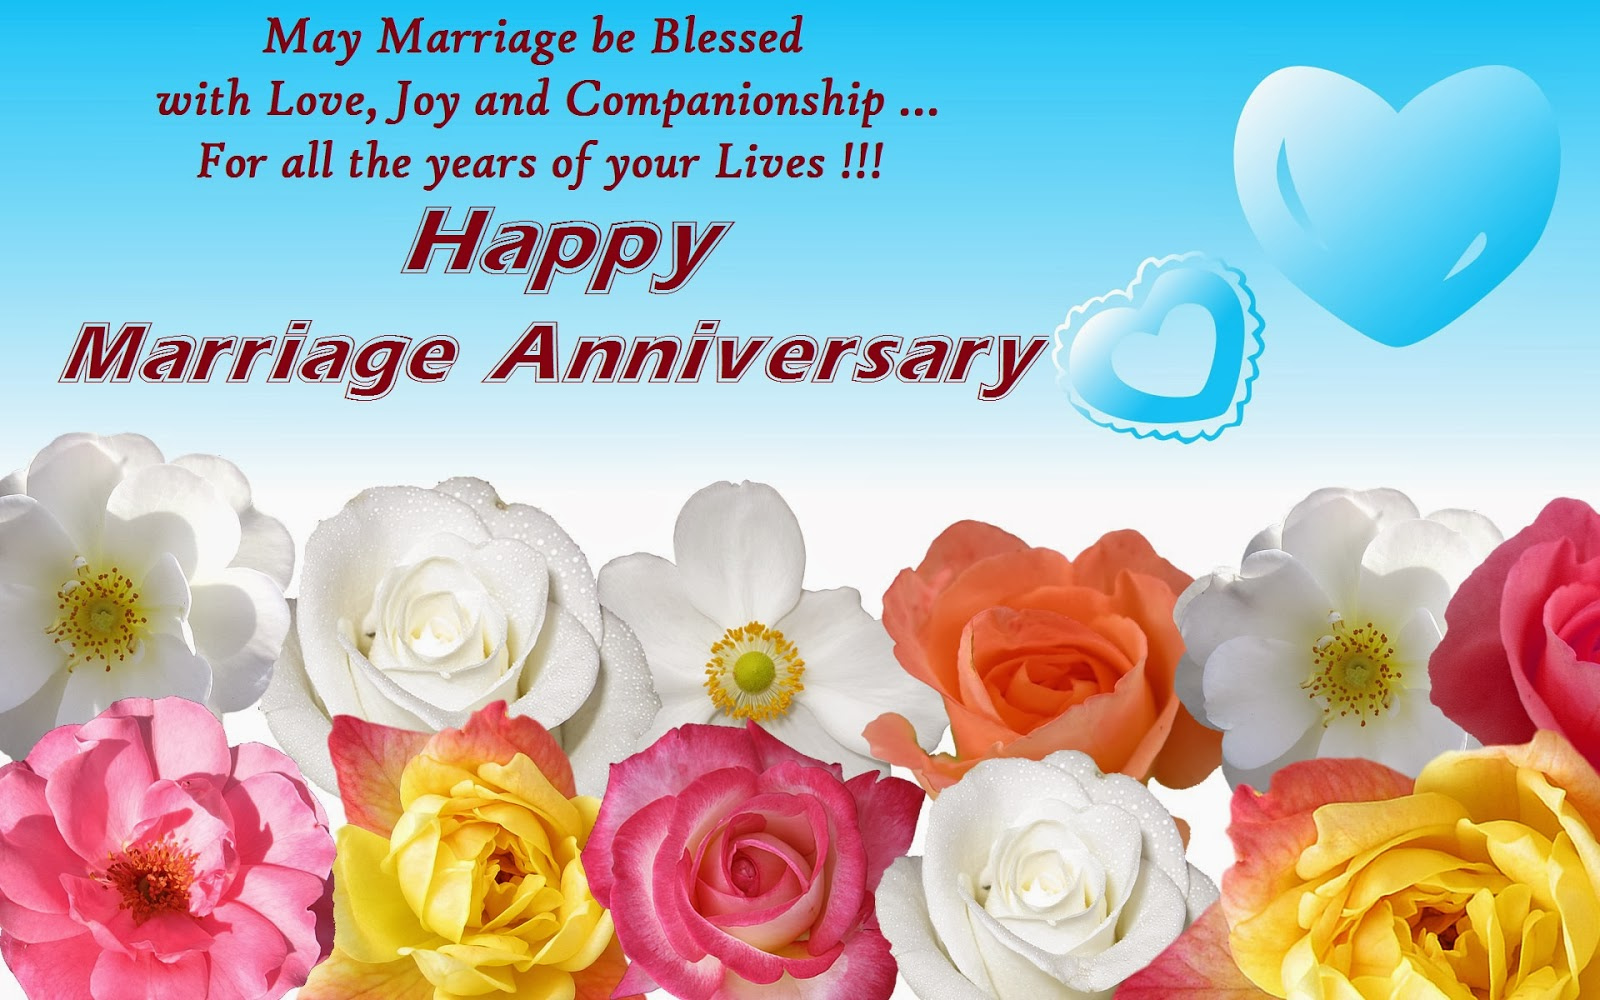 Best-Happy-Wedding-Anniversary-Wishes-Cards-For-Husband-Wife.jpg